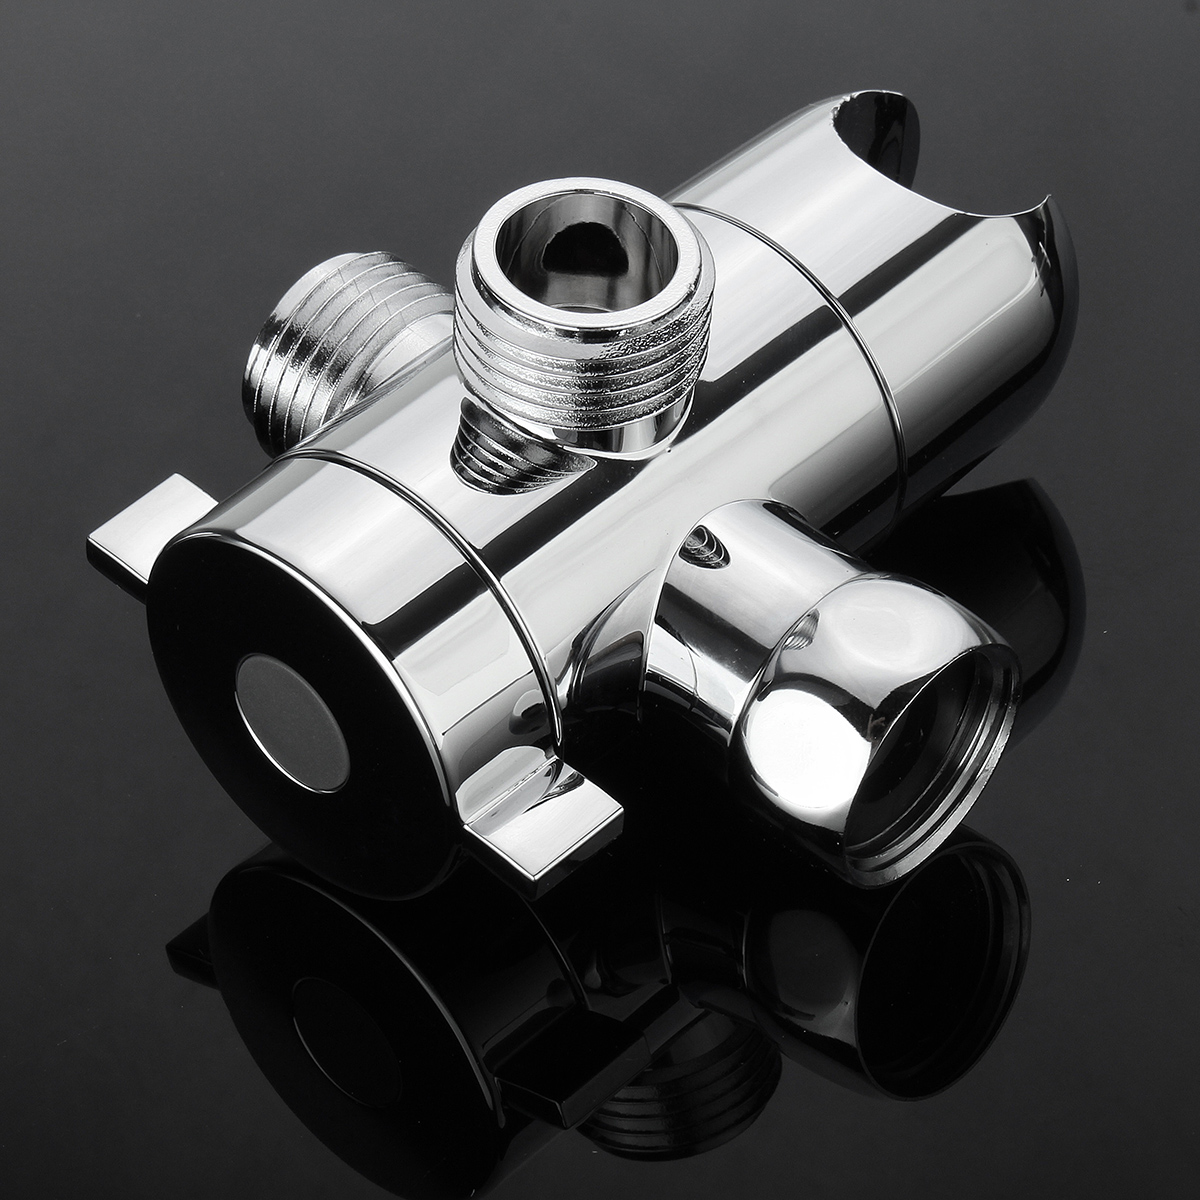 3-Way Shower Diverter Valve Convertor Mount Combo Shower Arm Handheld Fixed Bracket Chrome